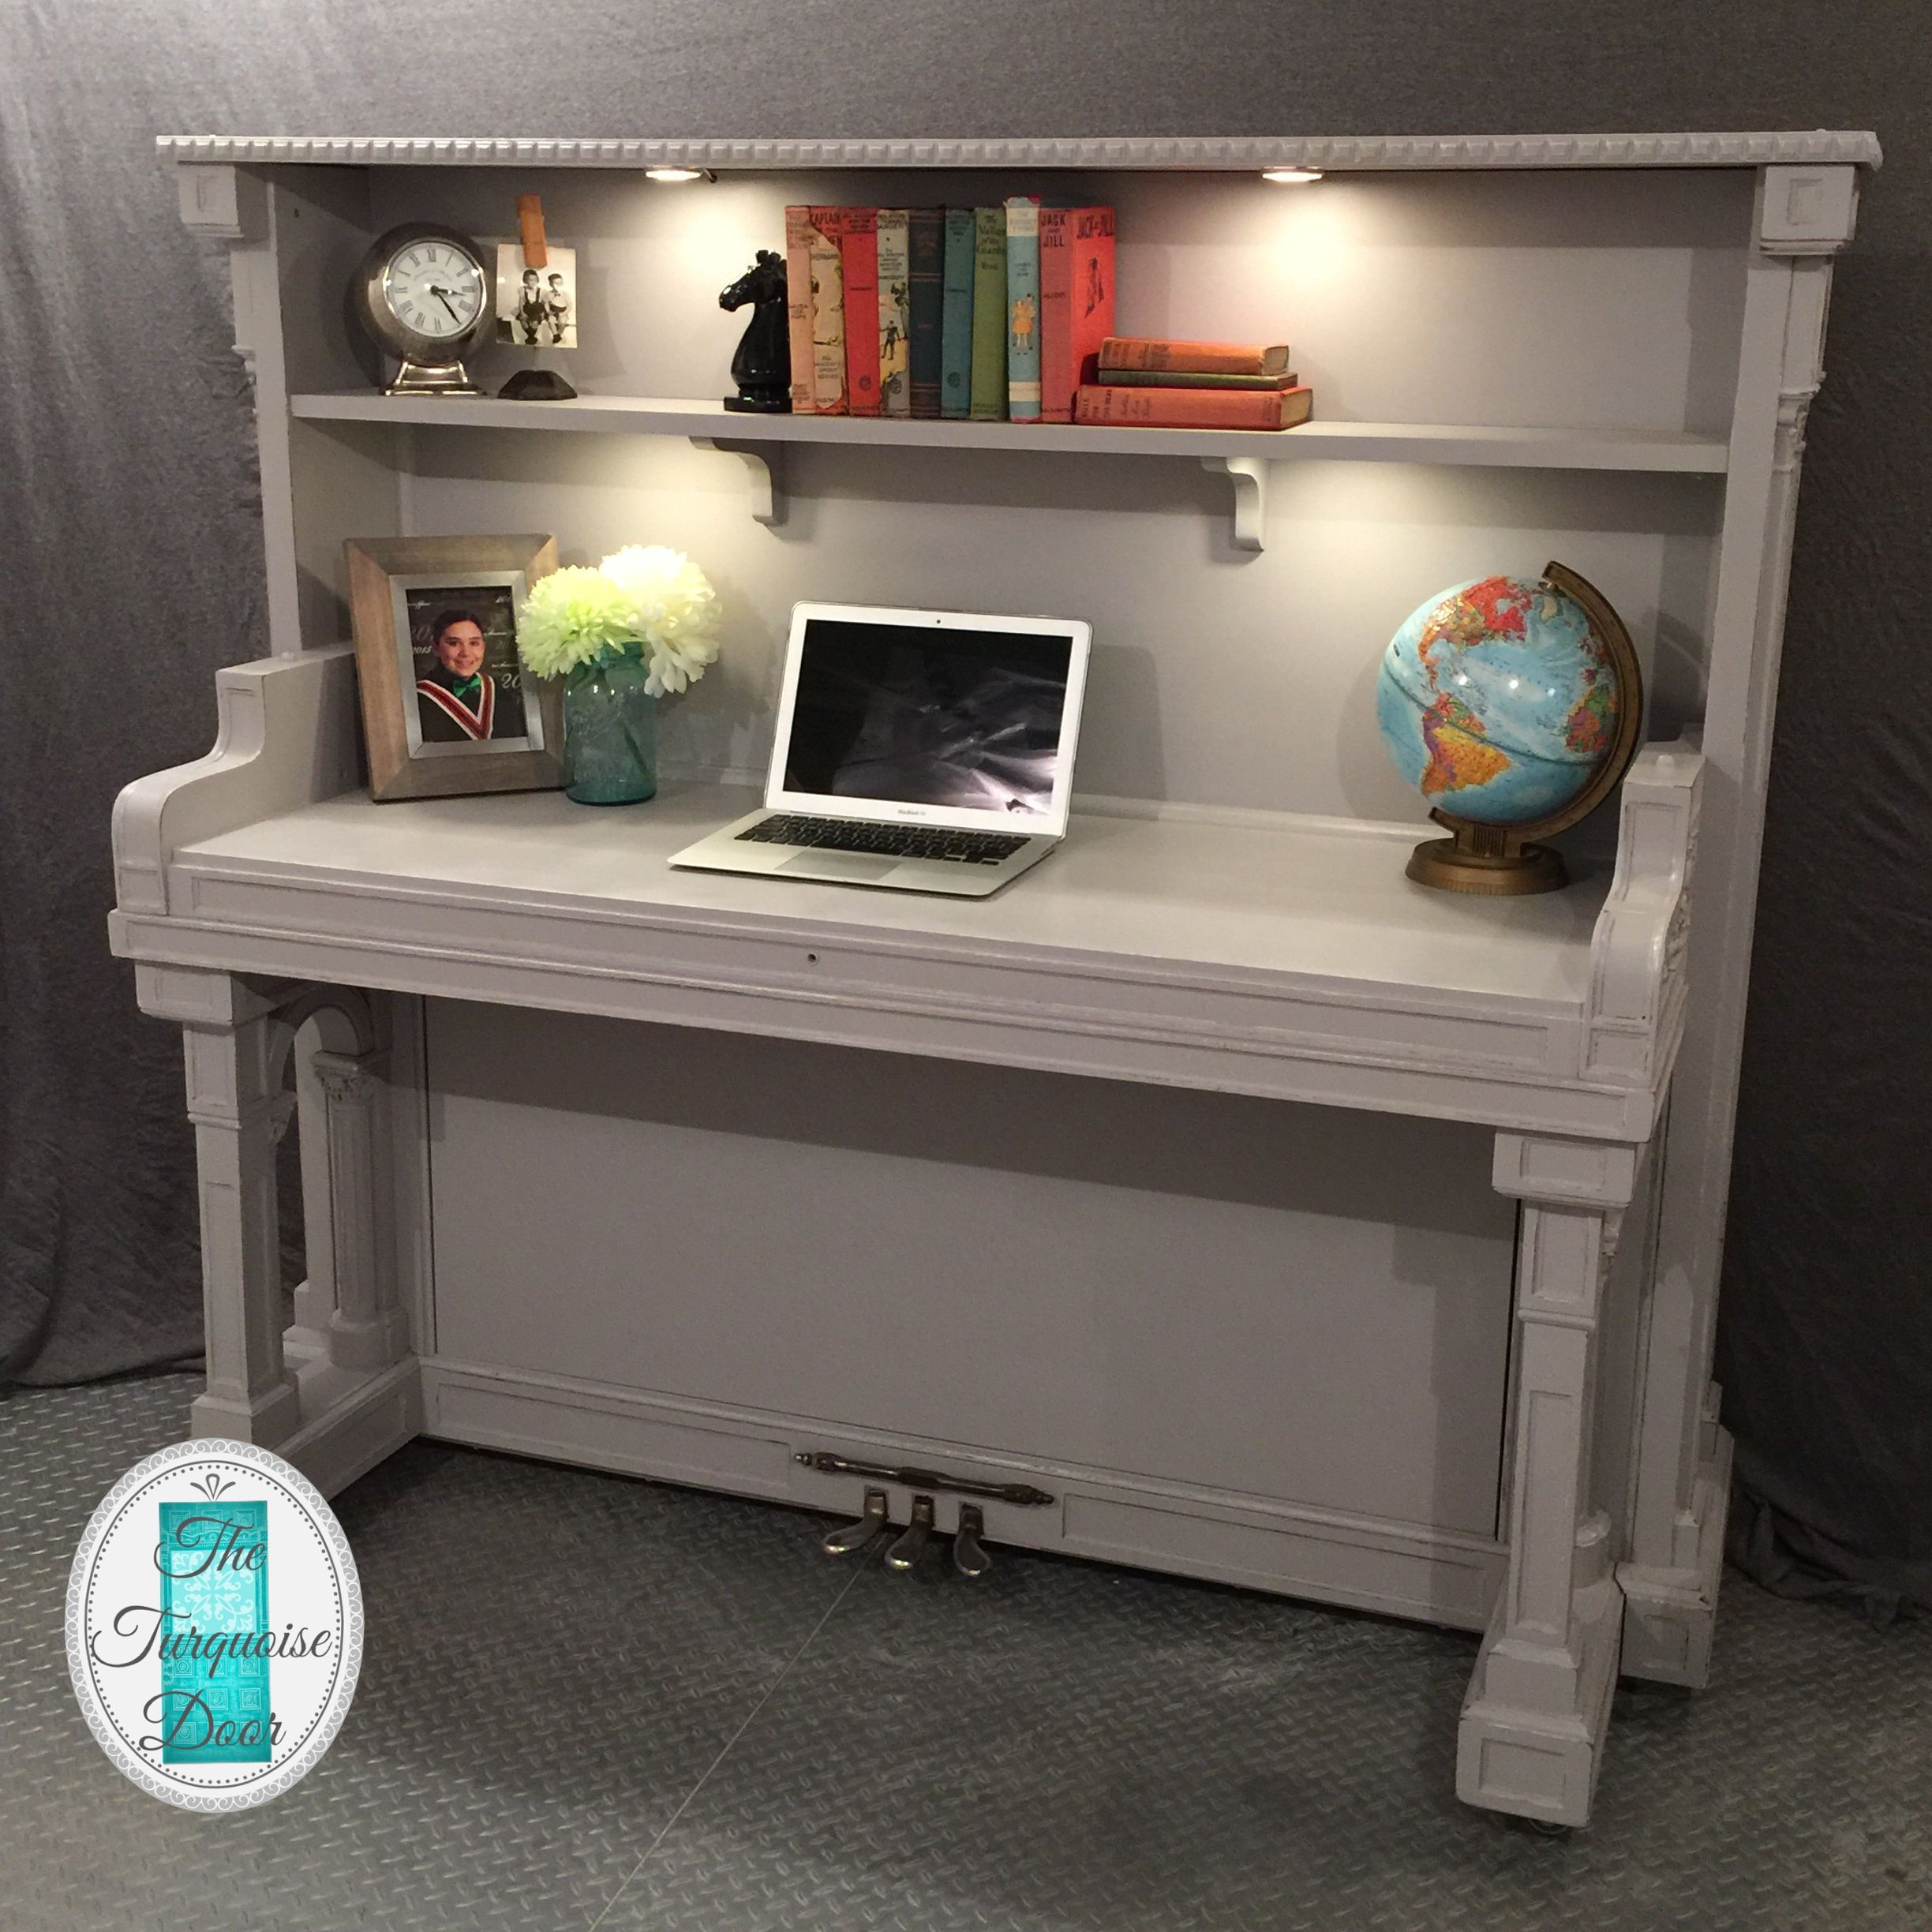 The Piano Desk Transformation Is Complete!